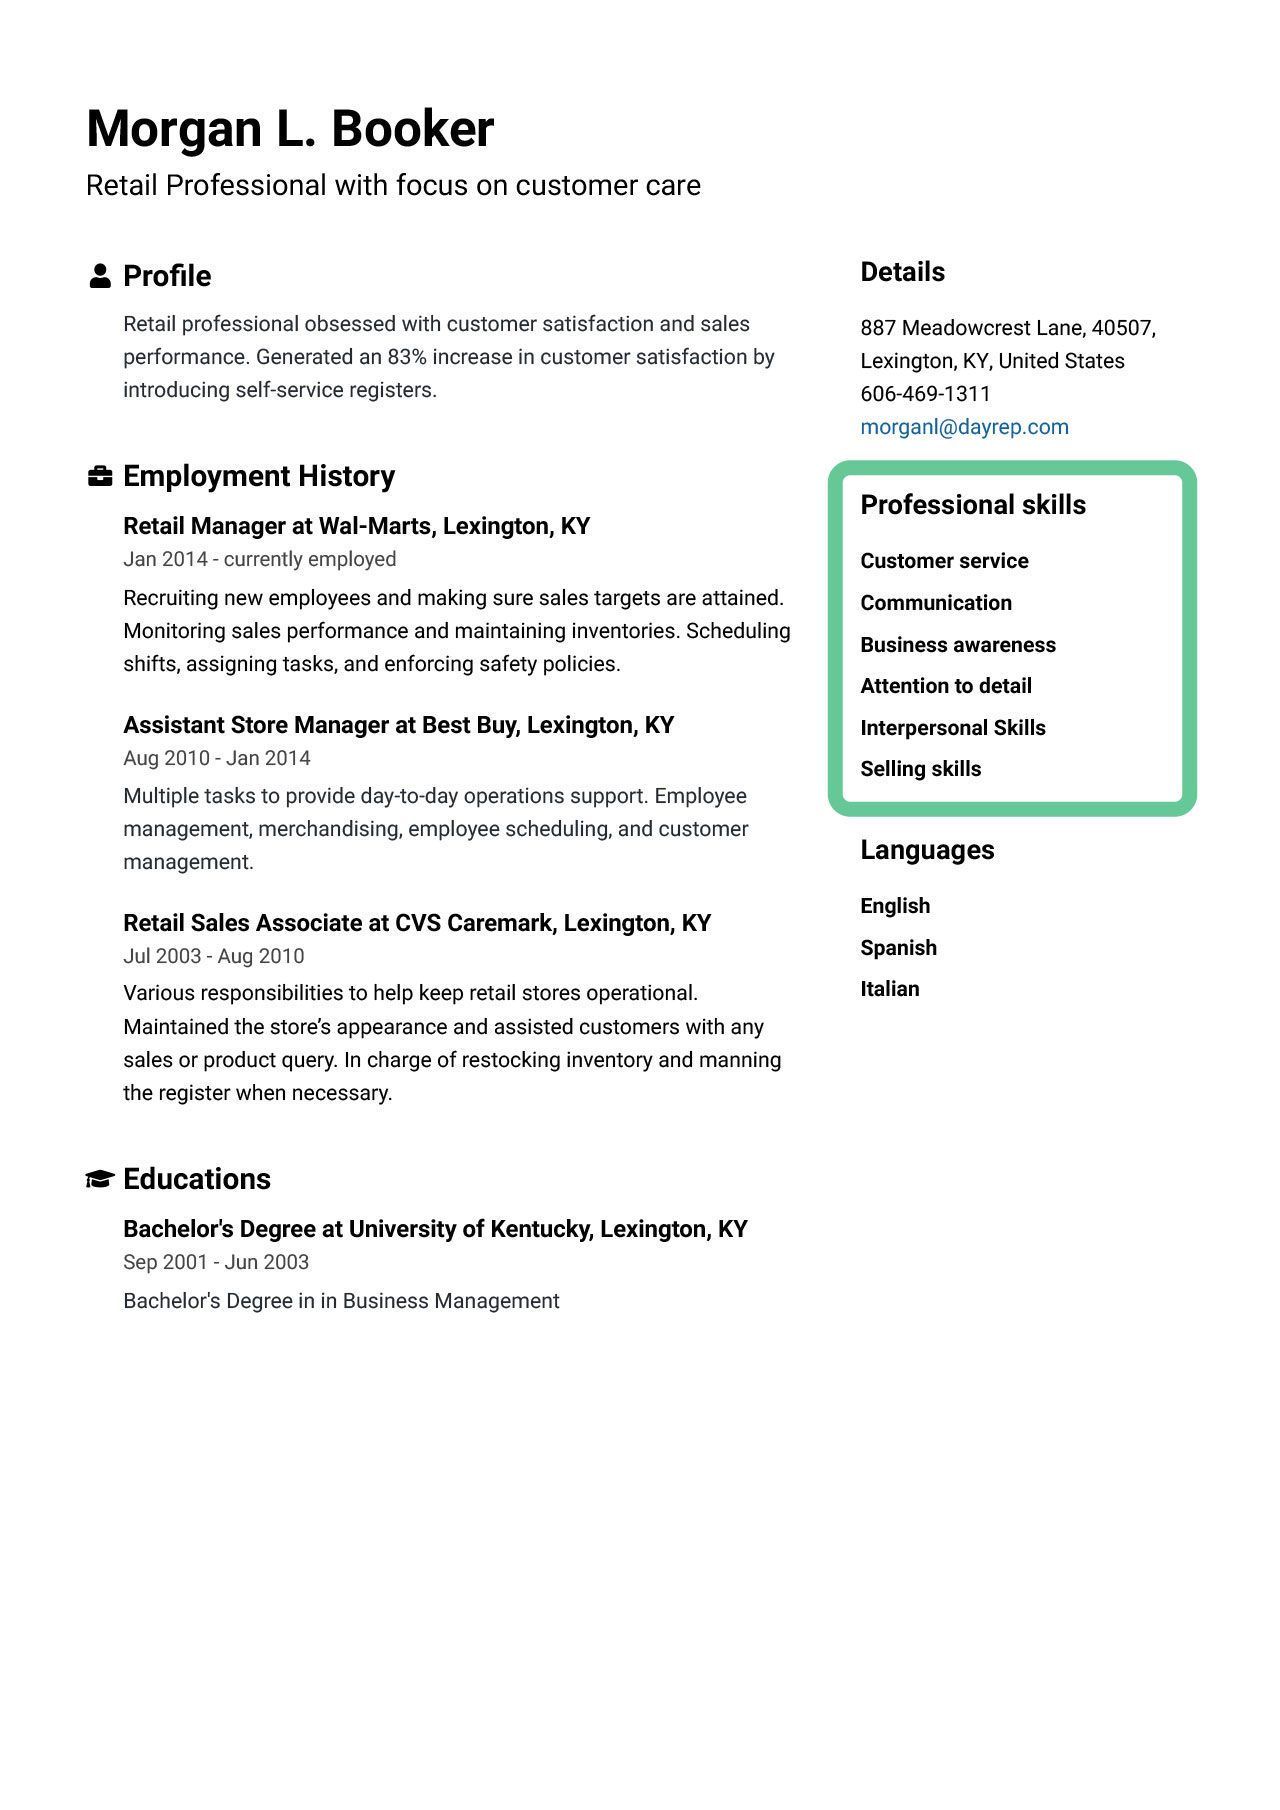 chronological resume with skills on right side